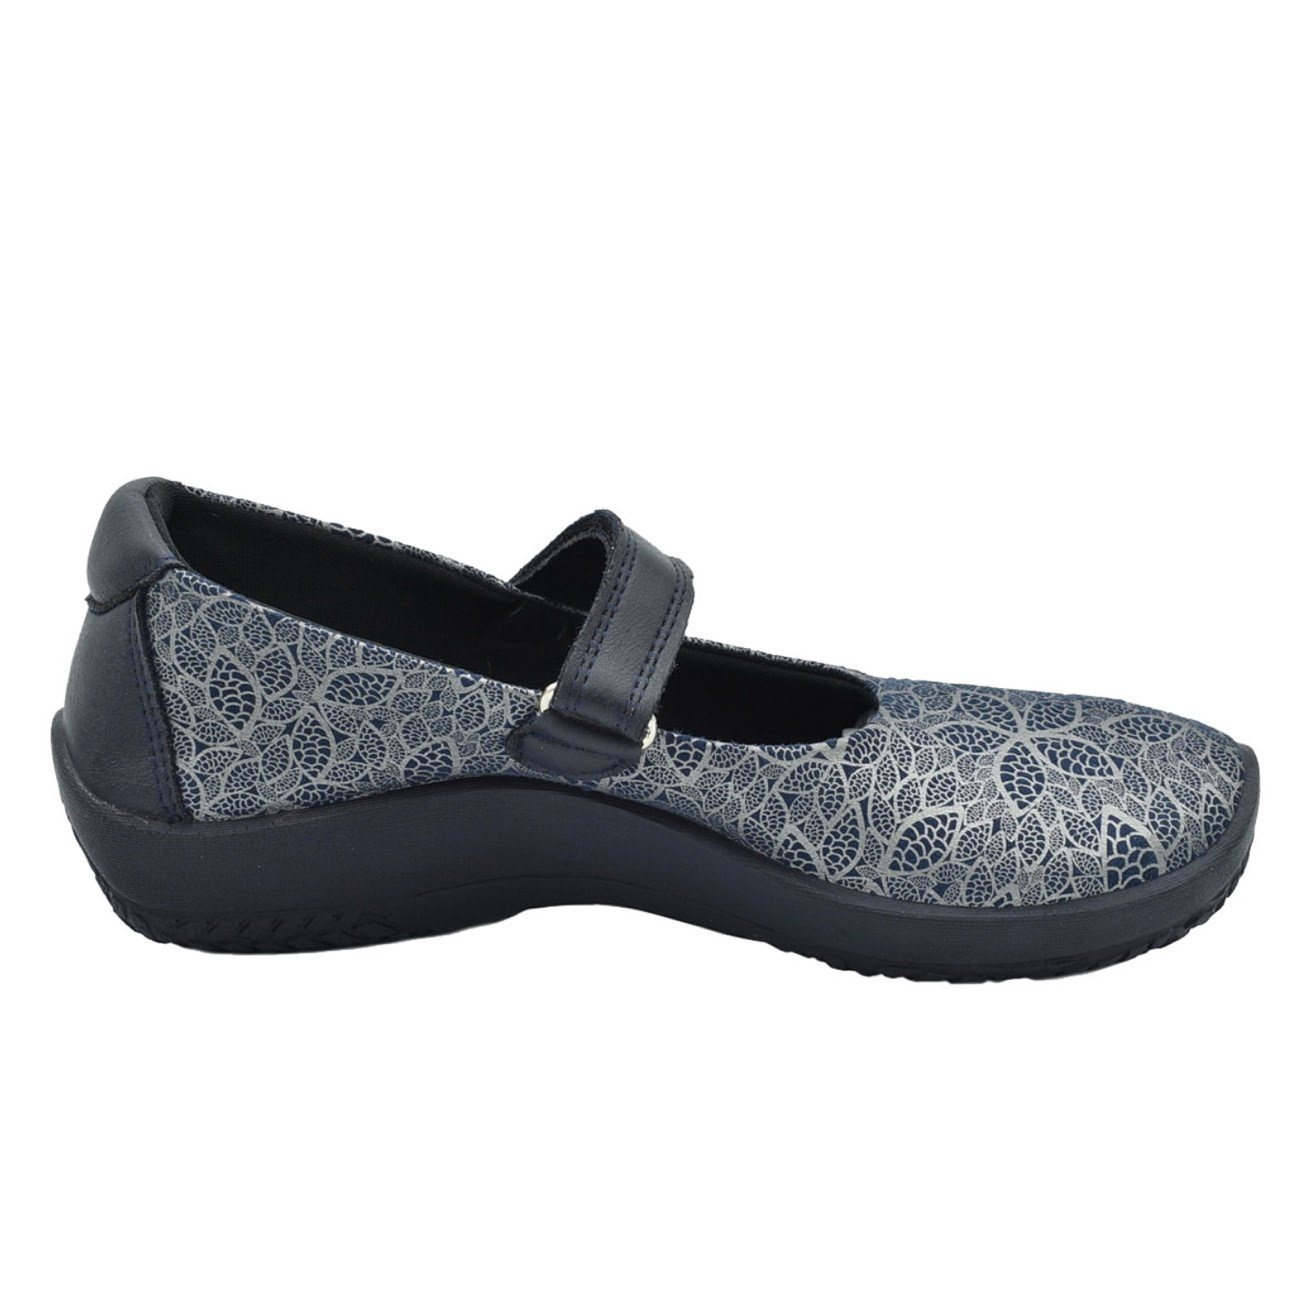 Arcopedico, L45 Leaf, Lytech, Navy Leaf Shoes Arcopedico